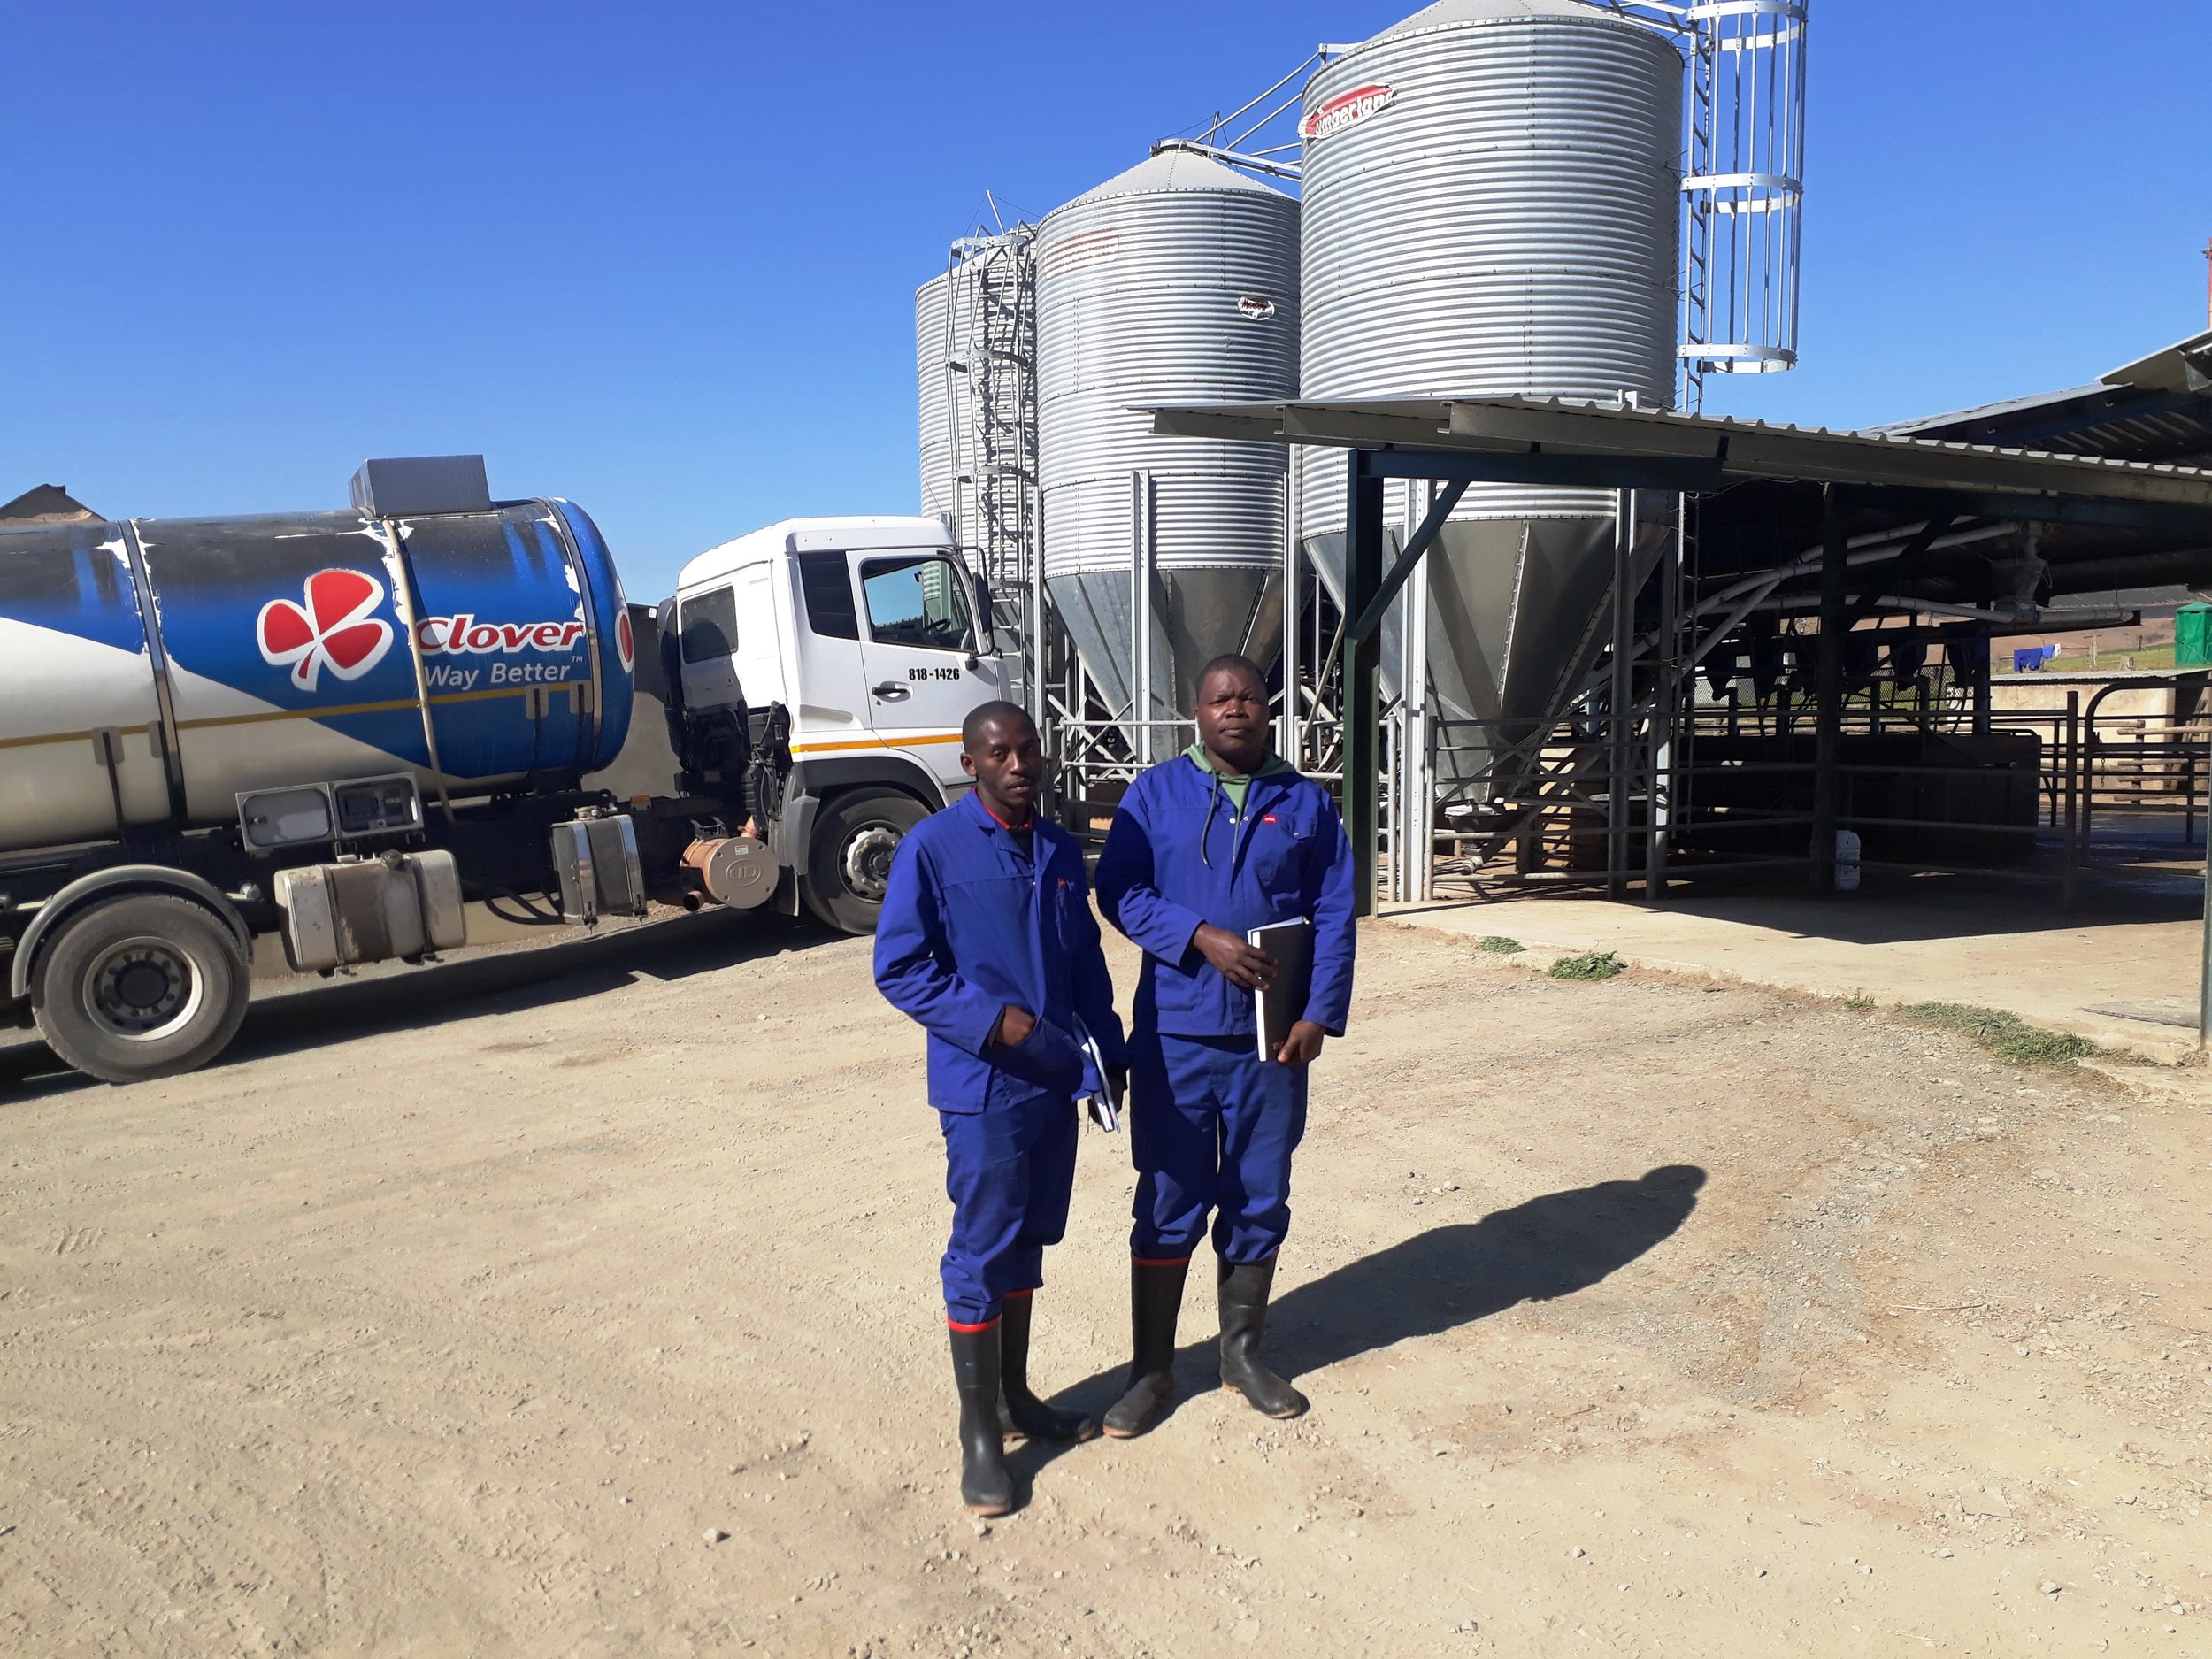 Asanda Jele (L) and Njabulo Makhatini (R) on the Stapylton-Smiths dairy farm near Donnybrook where they are doing their in-service training